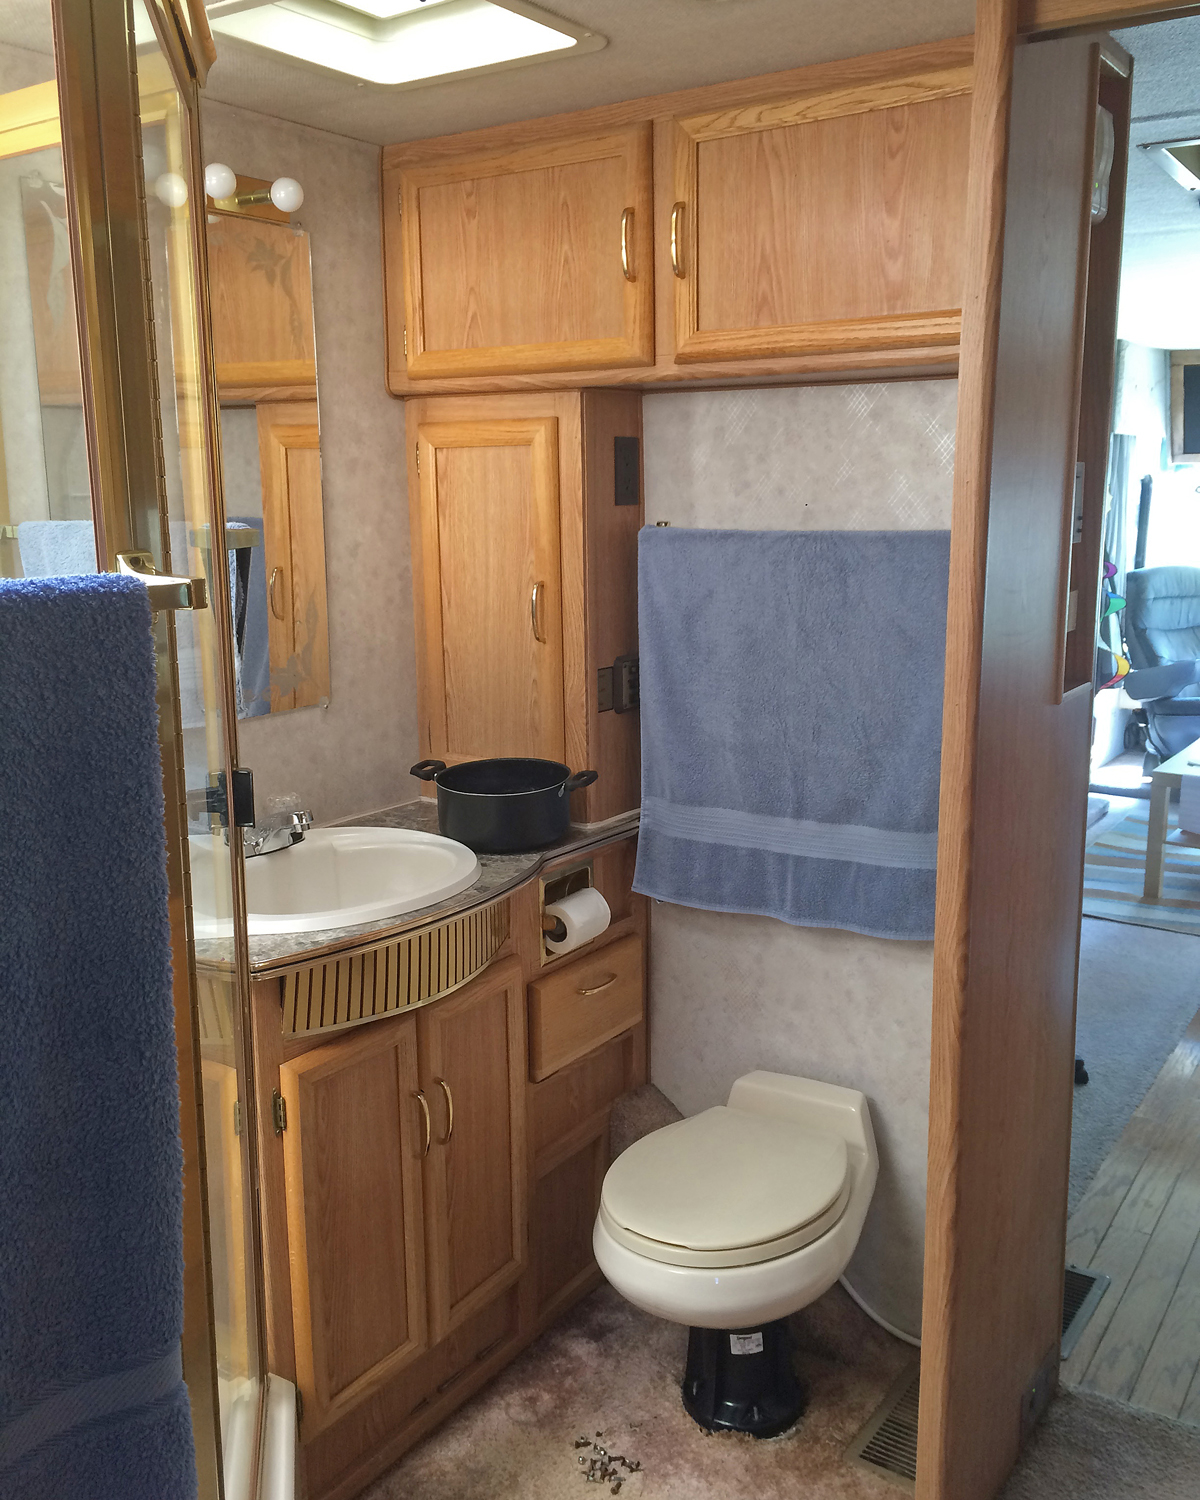 What happened next rv renovation the bathroom edition Rv with 2 bedrooms 2 bathrooms